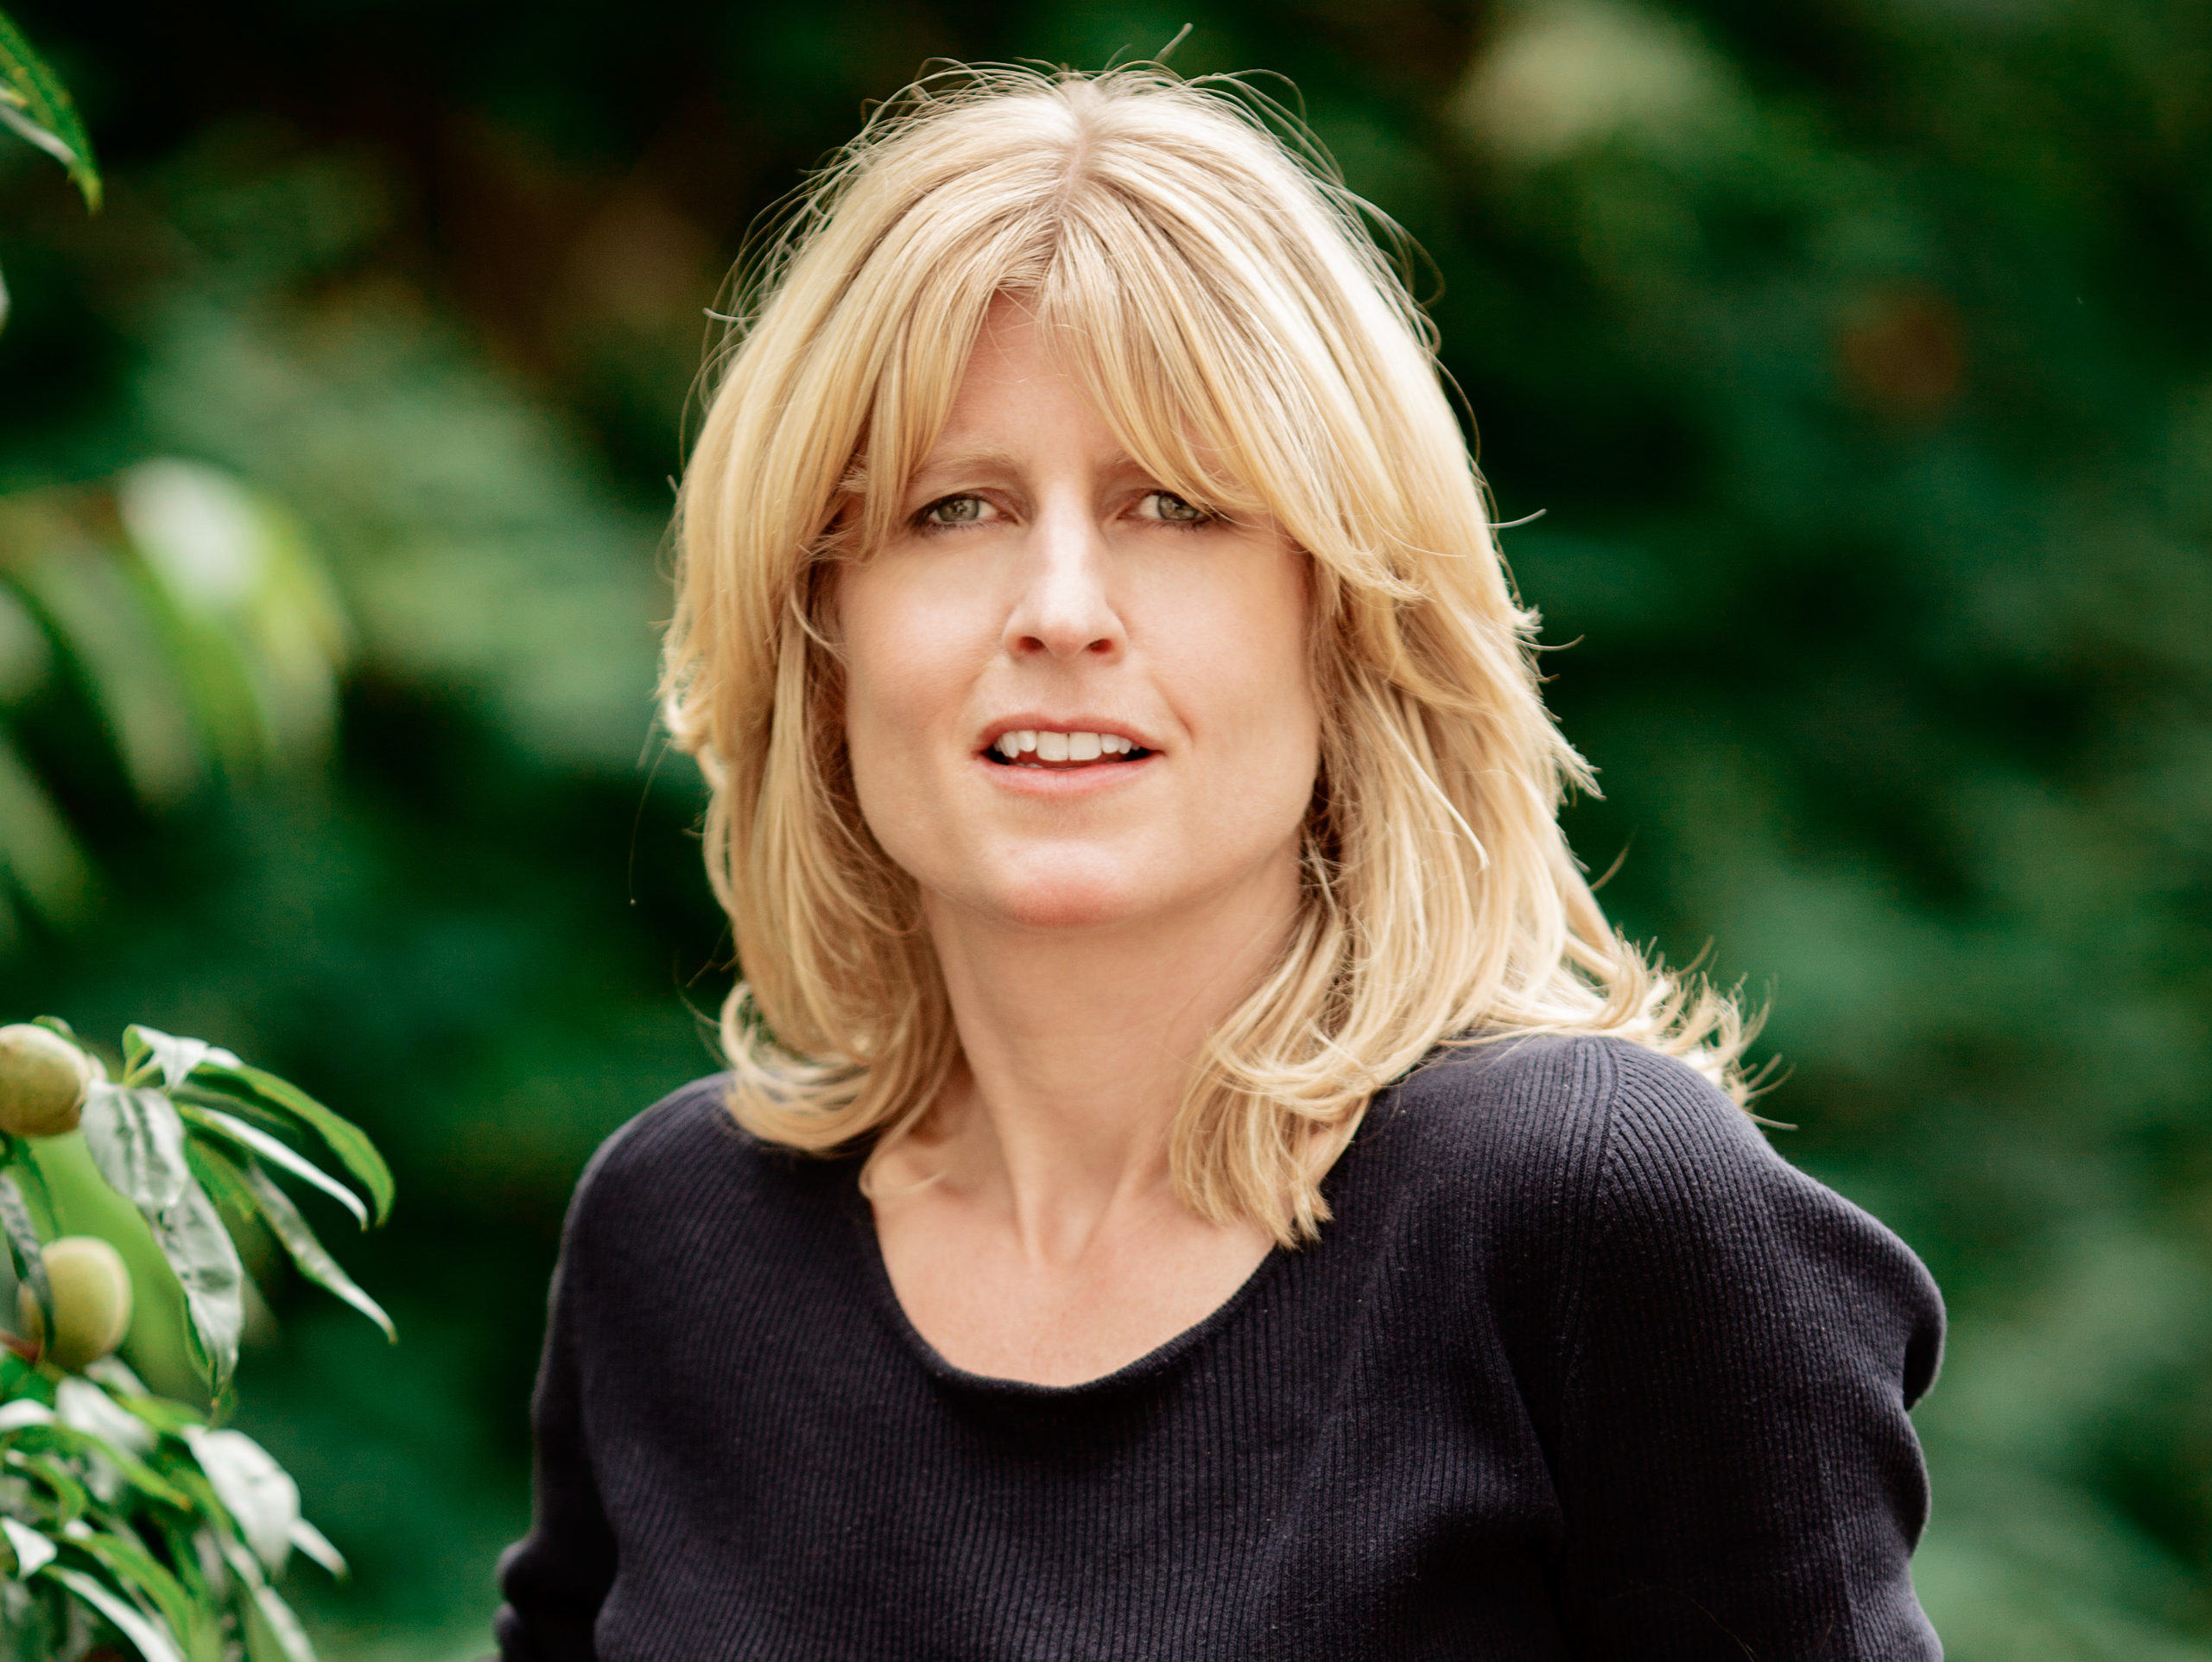 Rachel Johnson Bio, Height, Ag...